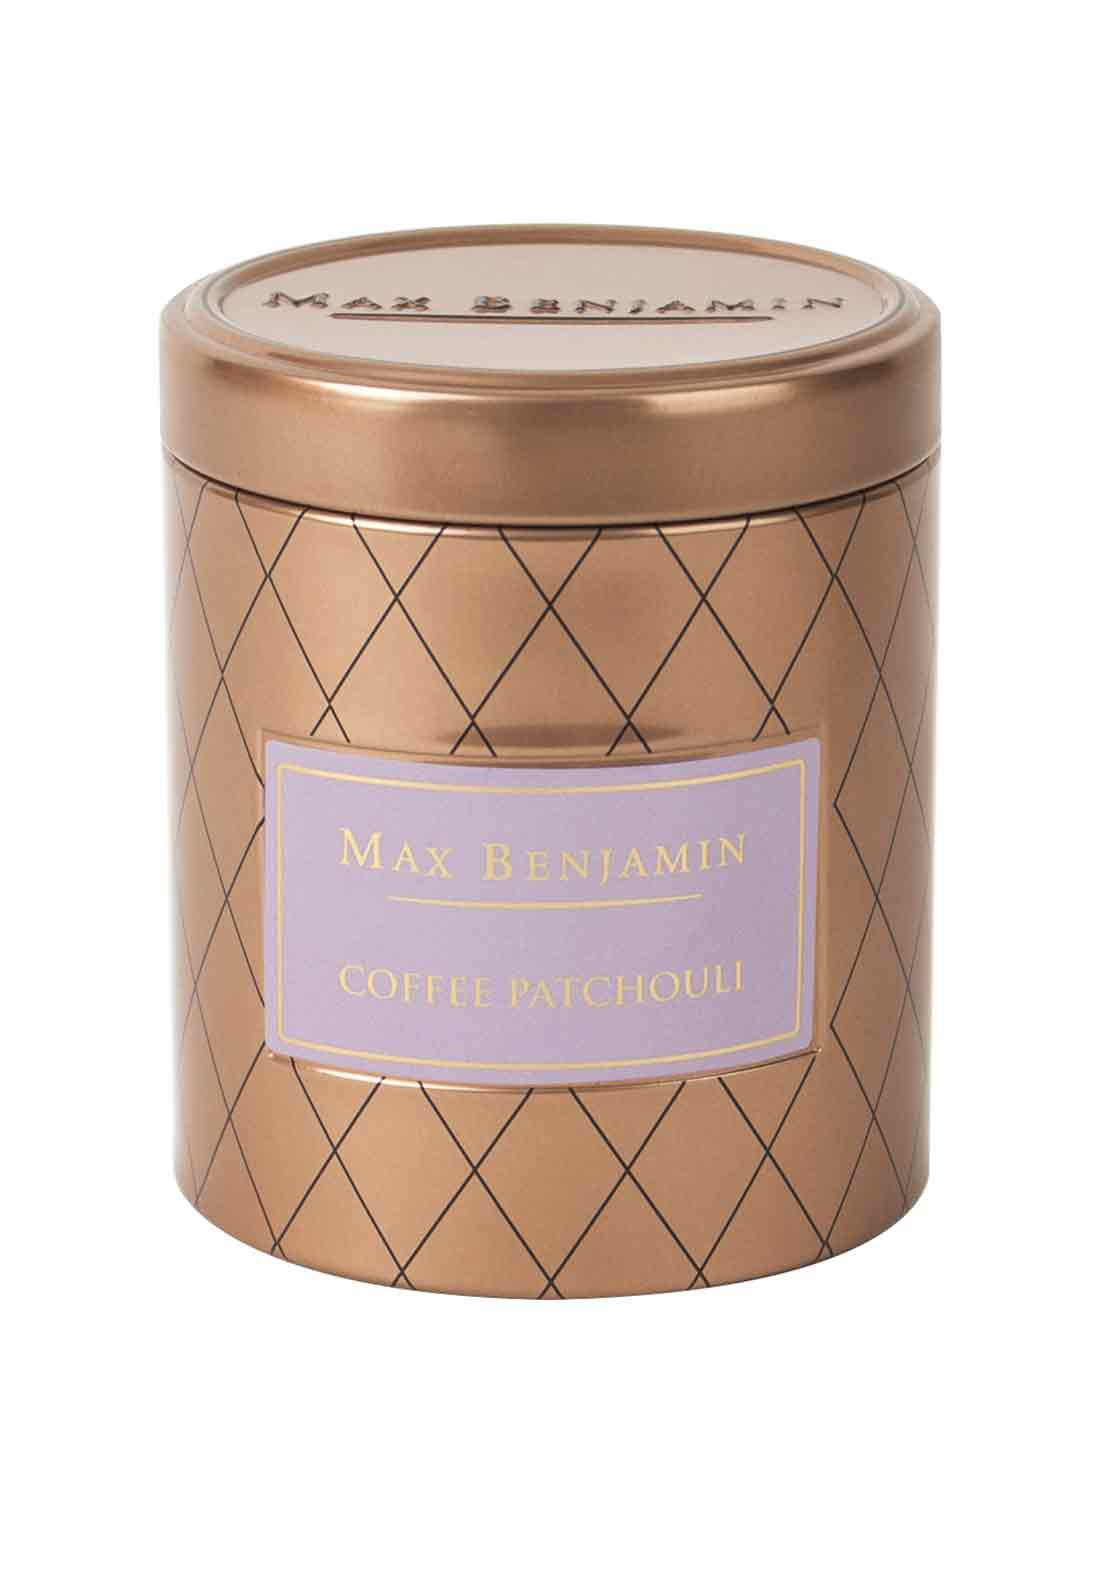 Max Benjamin Coffee Patchouli Scented Candle